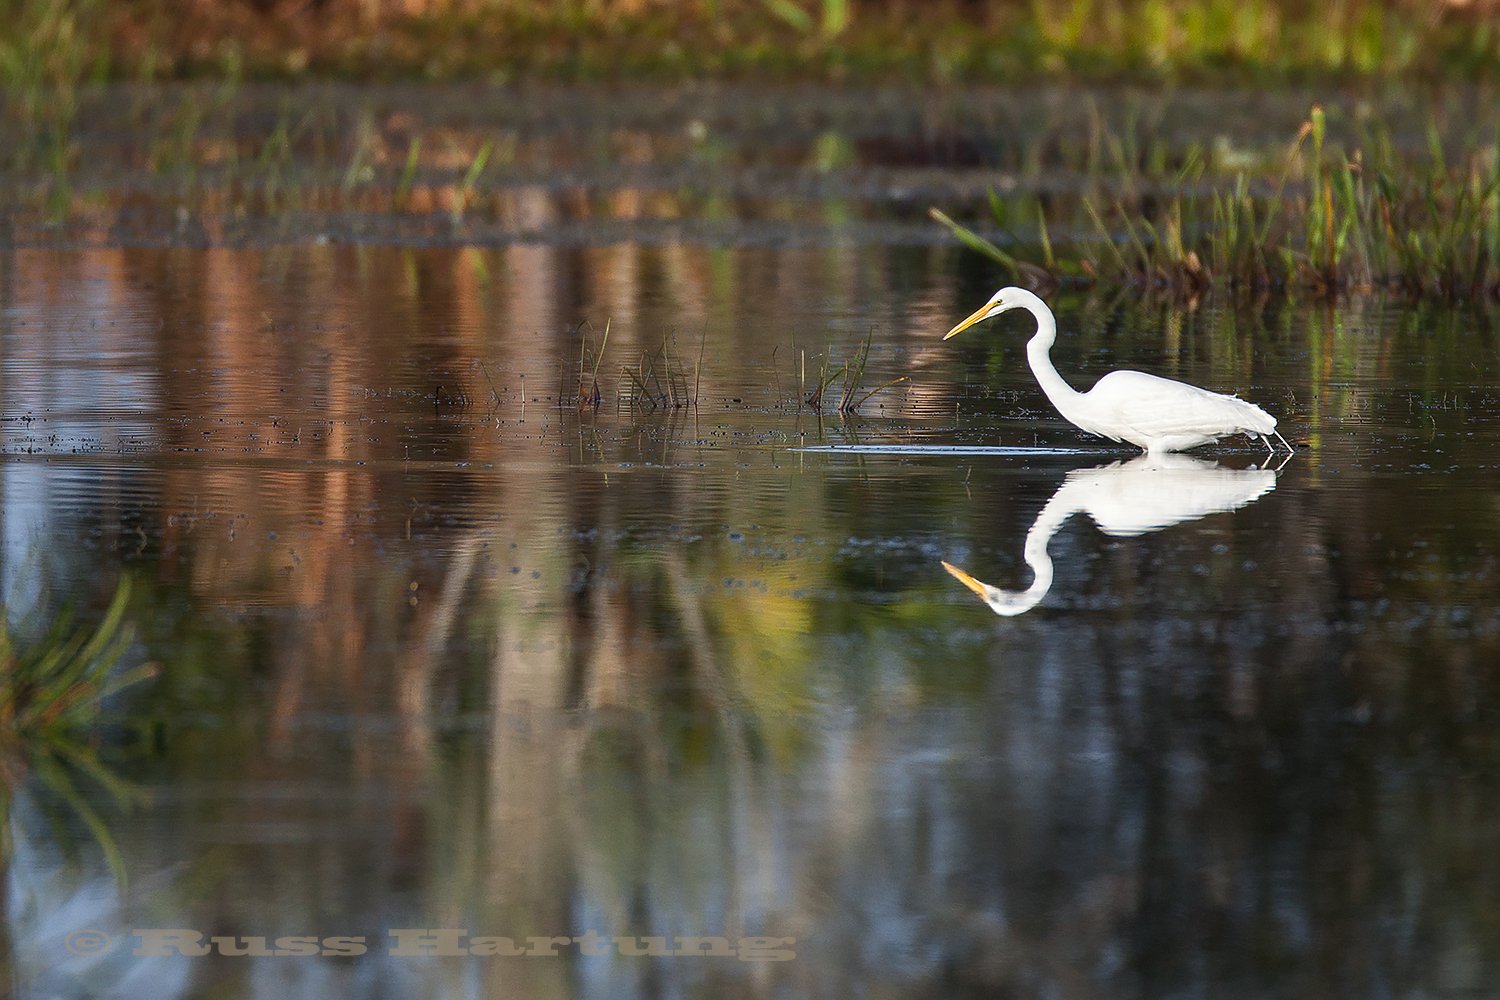 Egret fishing in the Orlando Wetlands park during spring migration.